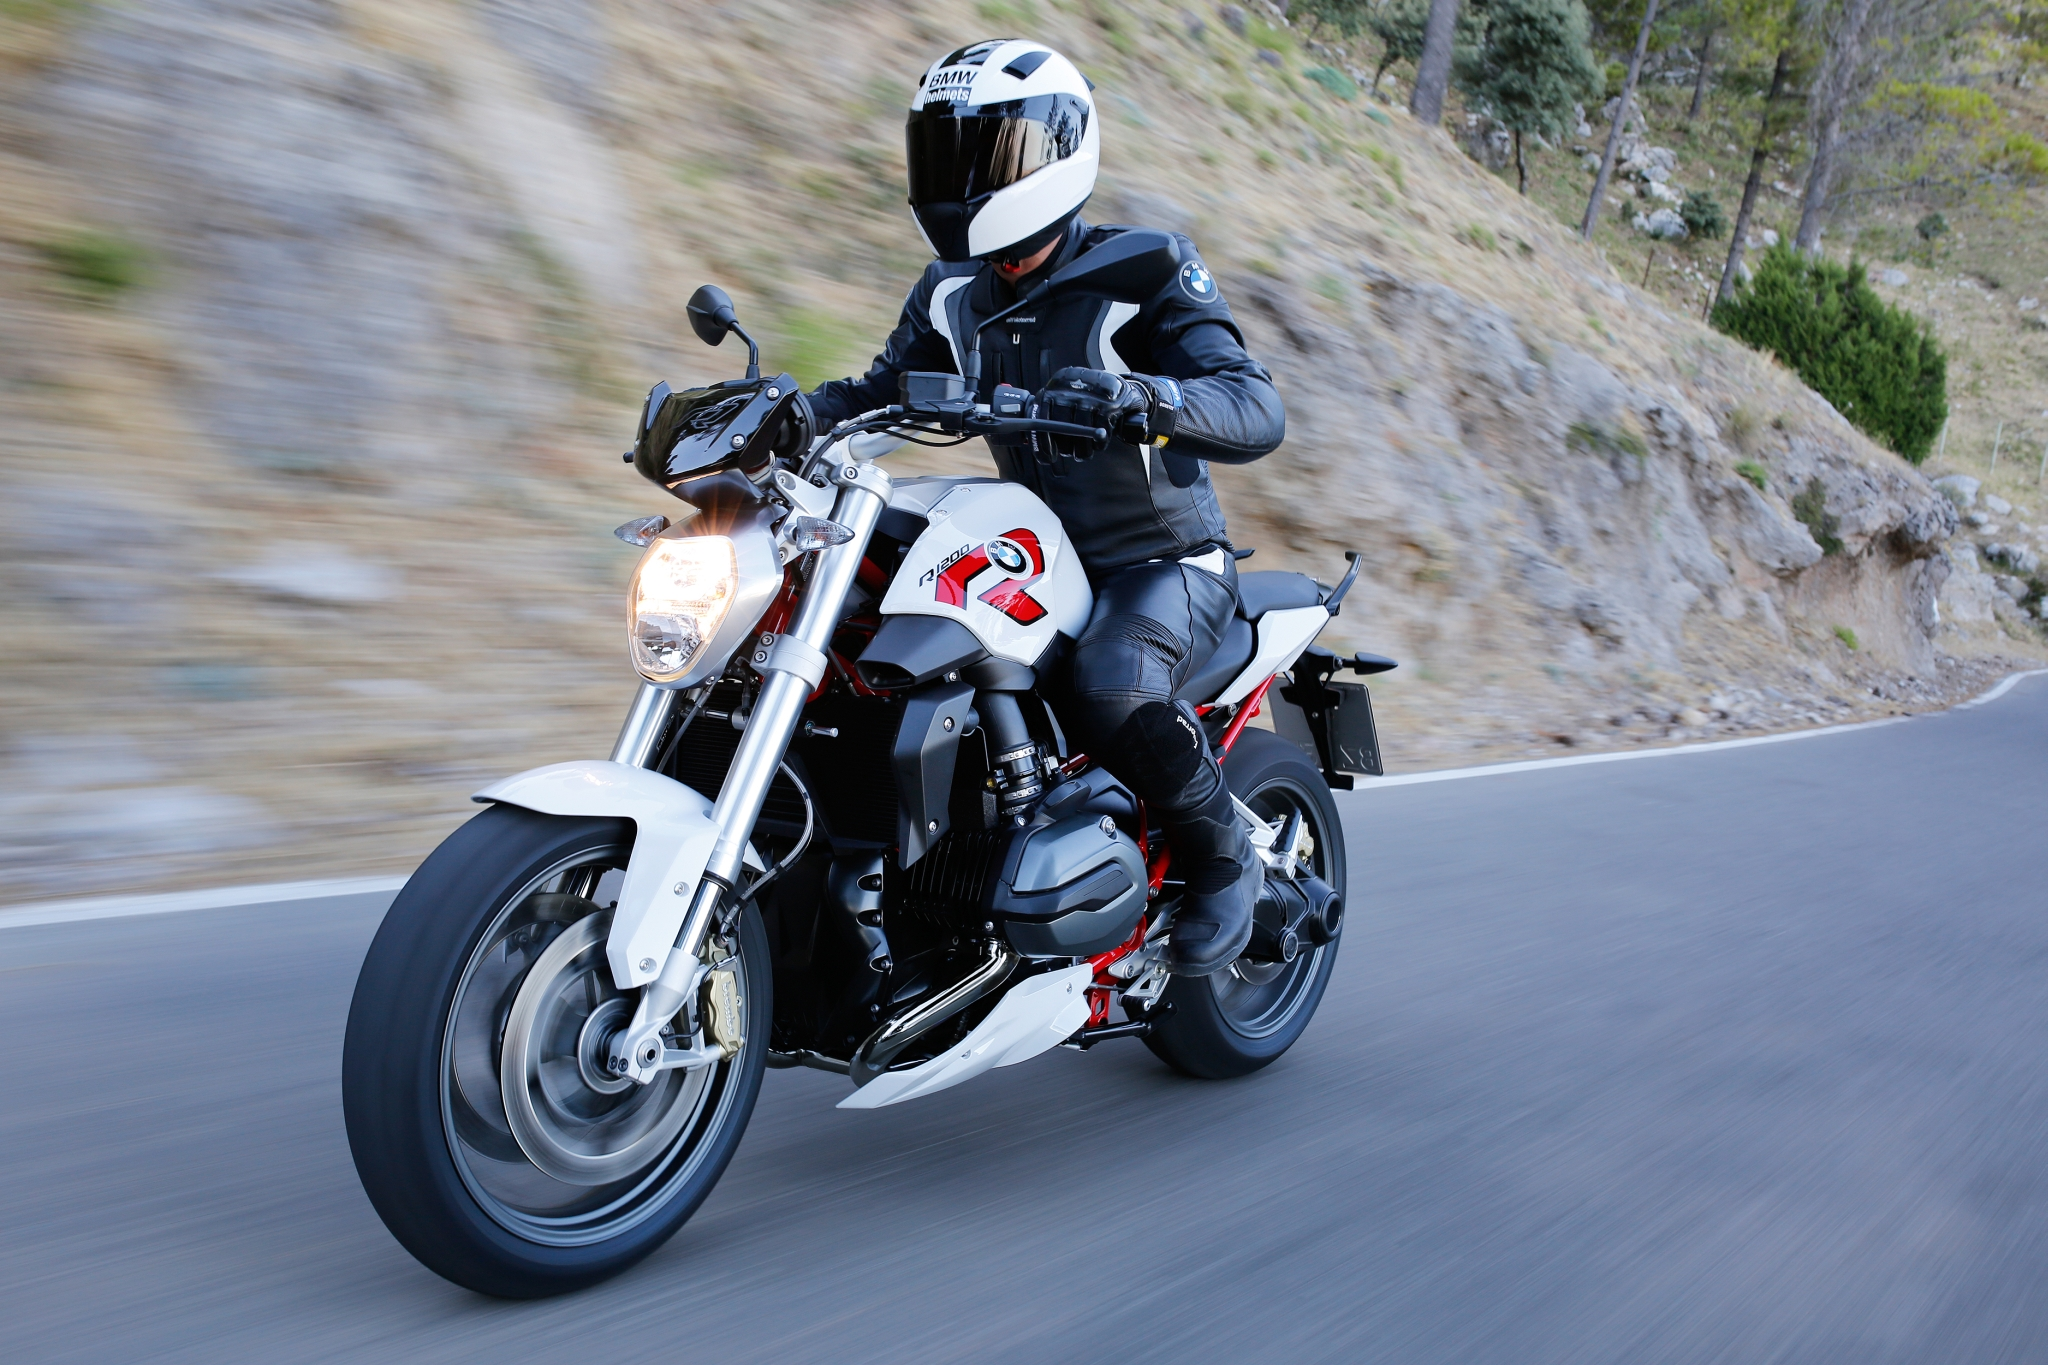 2015 BMW R1200R in 170+ Pictures - autoevolution